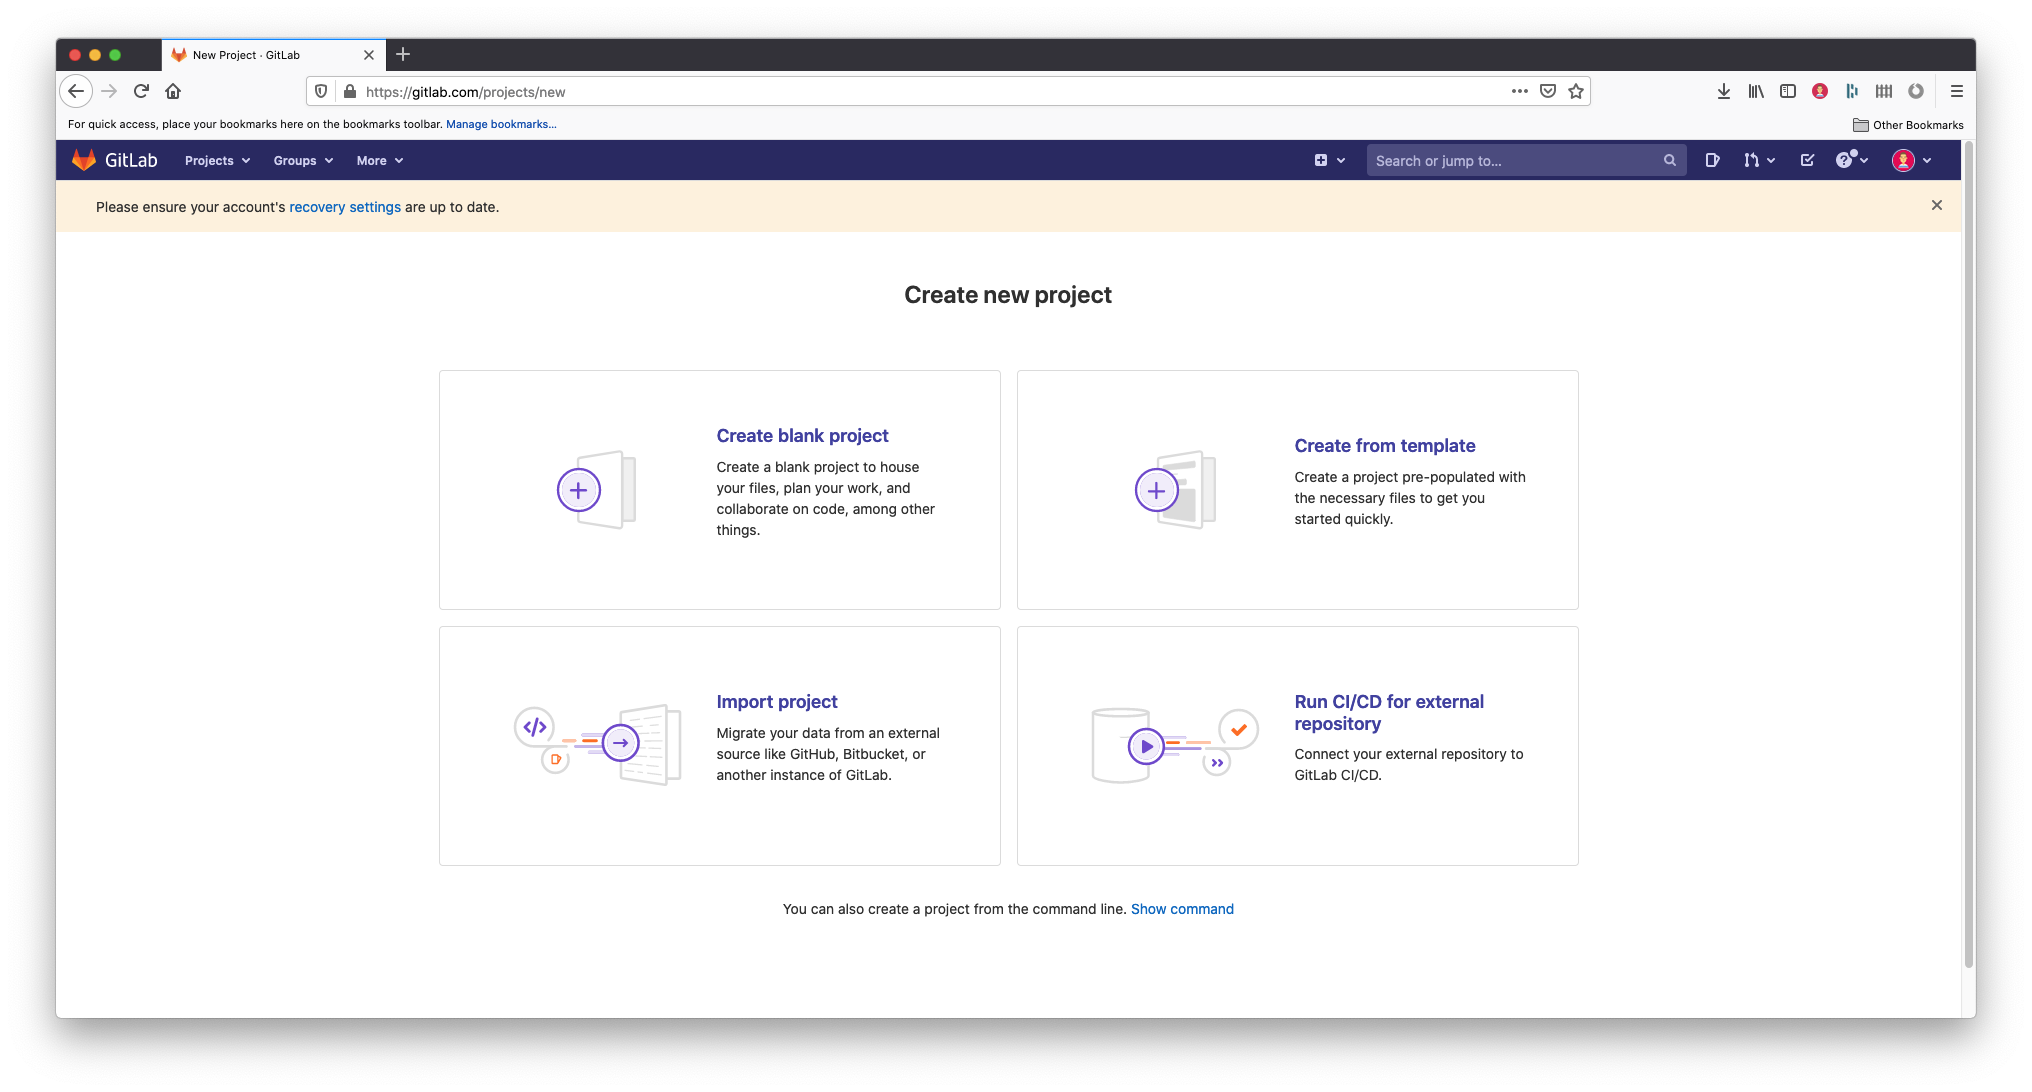 A screenshot of the Gitlab 'Create new project' screen. The screen contains 4 options: Create blank project, Create from template, Import Project and Run CI/CD for external repository. You will want to select the first option, Create blank project.